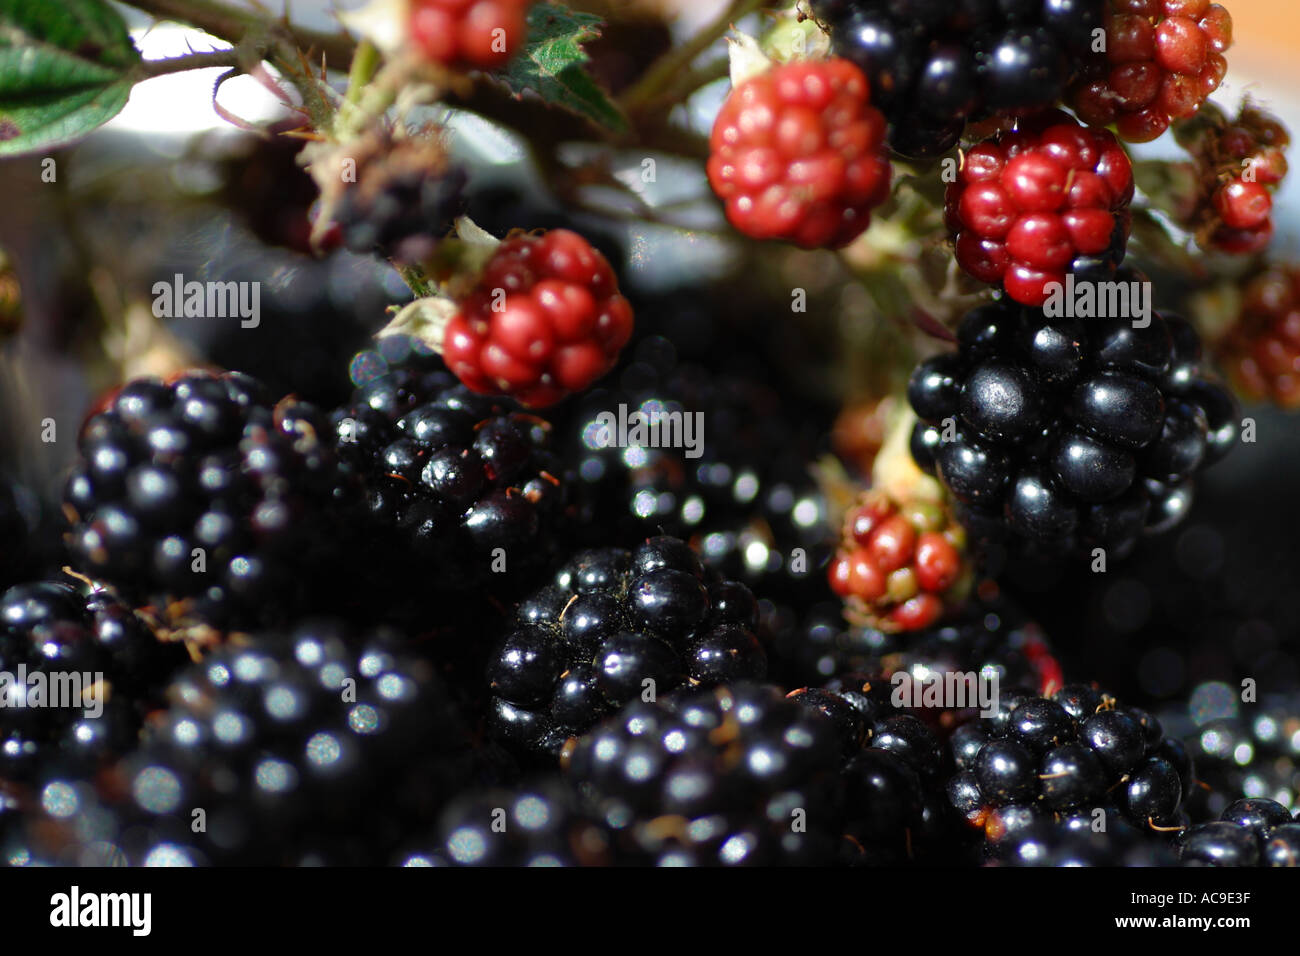 Foragers delight, food for free from the hedgerow. Autumn bounty of fresh sun ripened blackberries Stock Photo